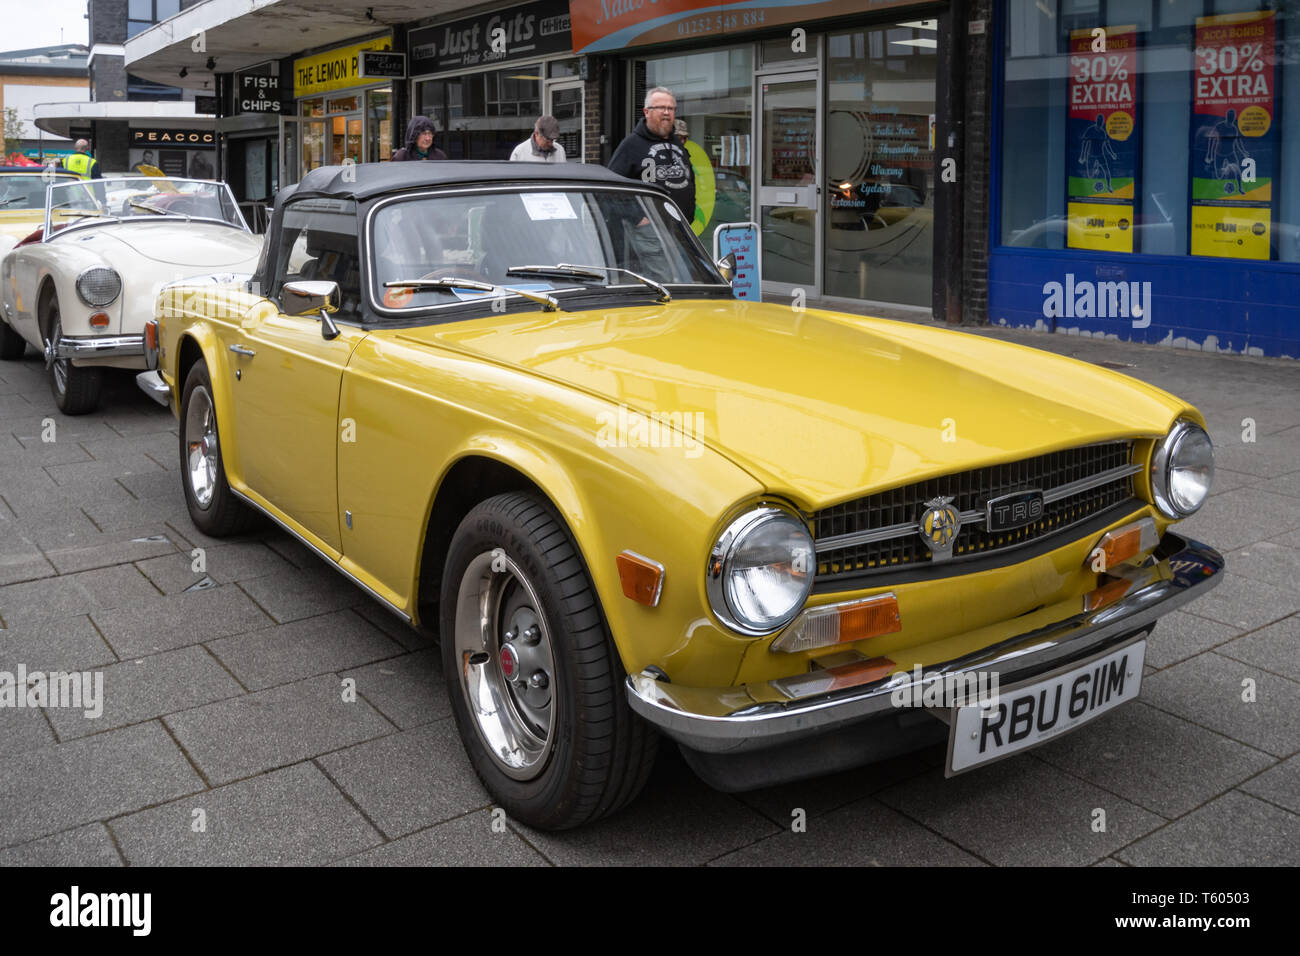 Yellow 1973 Triumph TR6 car at a classic motor vehicle show in the UK - Stock Image